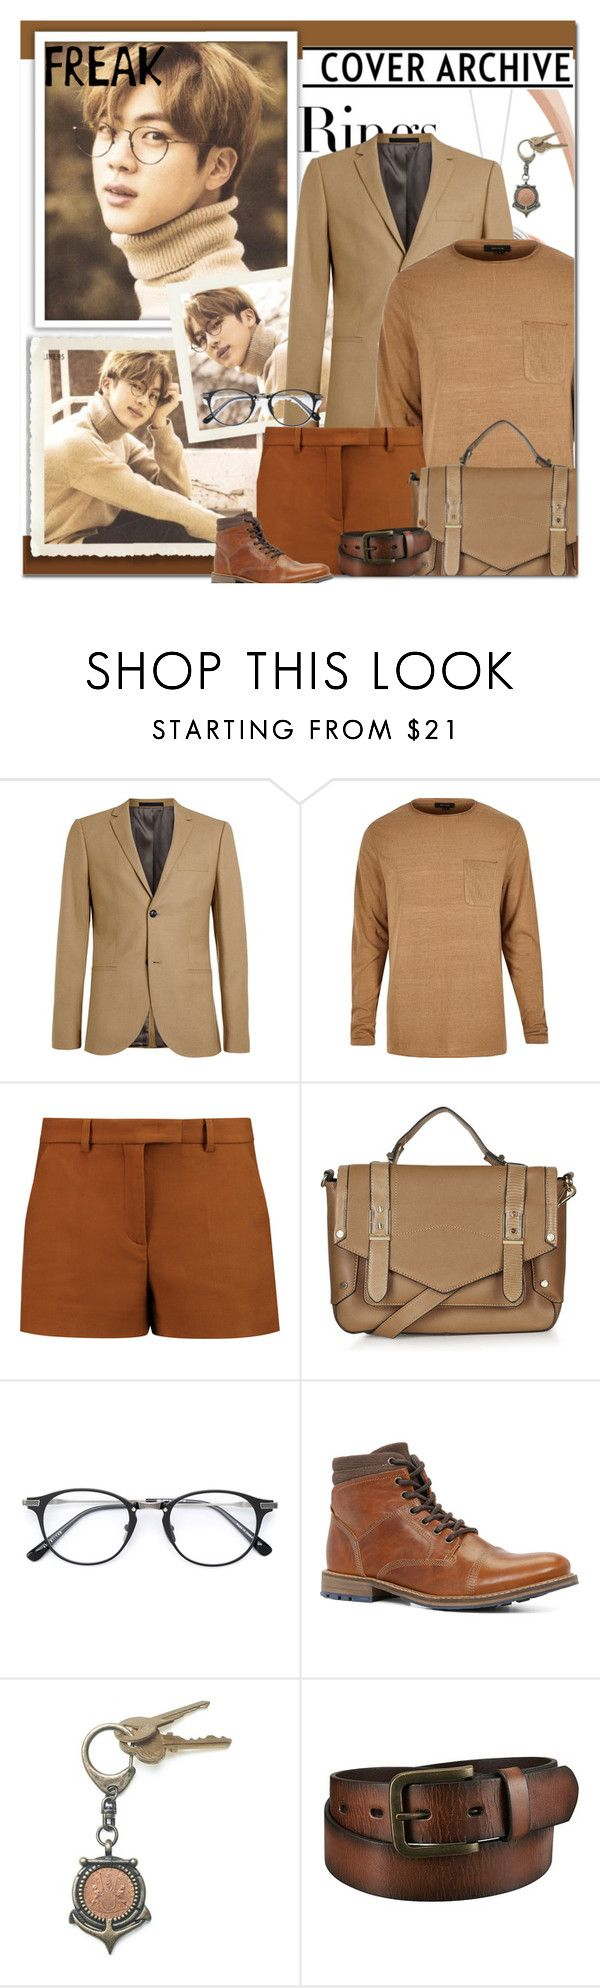 """Jin"" by lisannevicious ❤ liked on Polyvore featuring Tiffany & Co., Topman, Emilio Pucci, Topshop, ALDO, American Coin Treasures, Uniqlo, men's fashion and menswear"